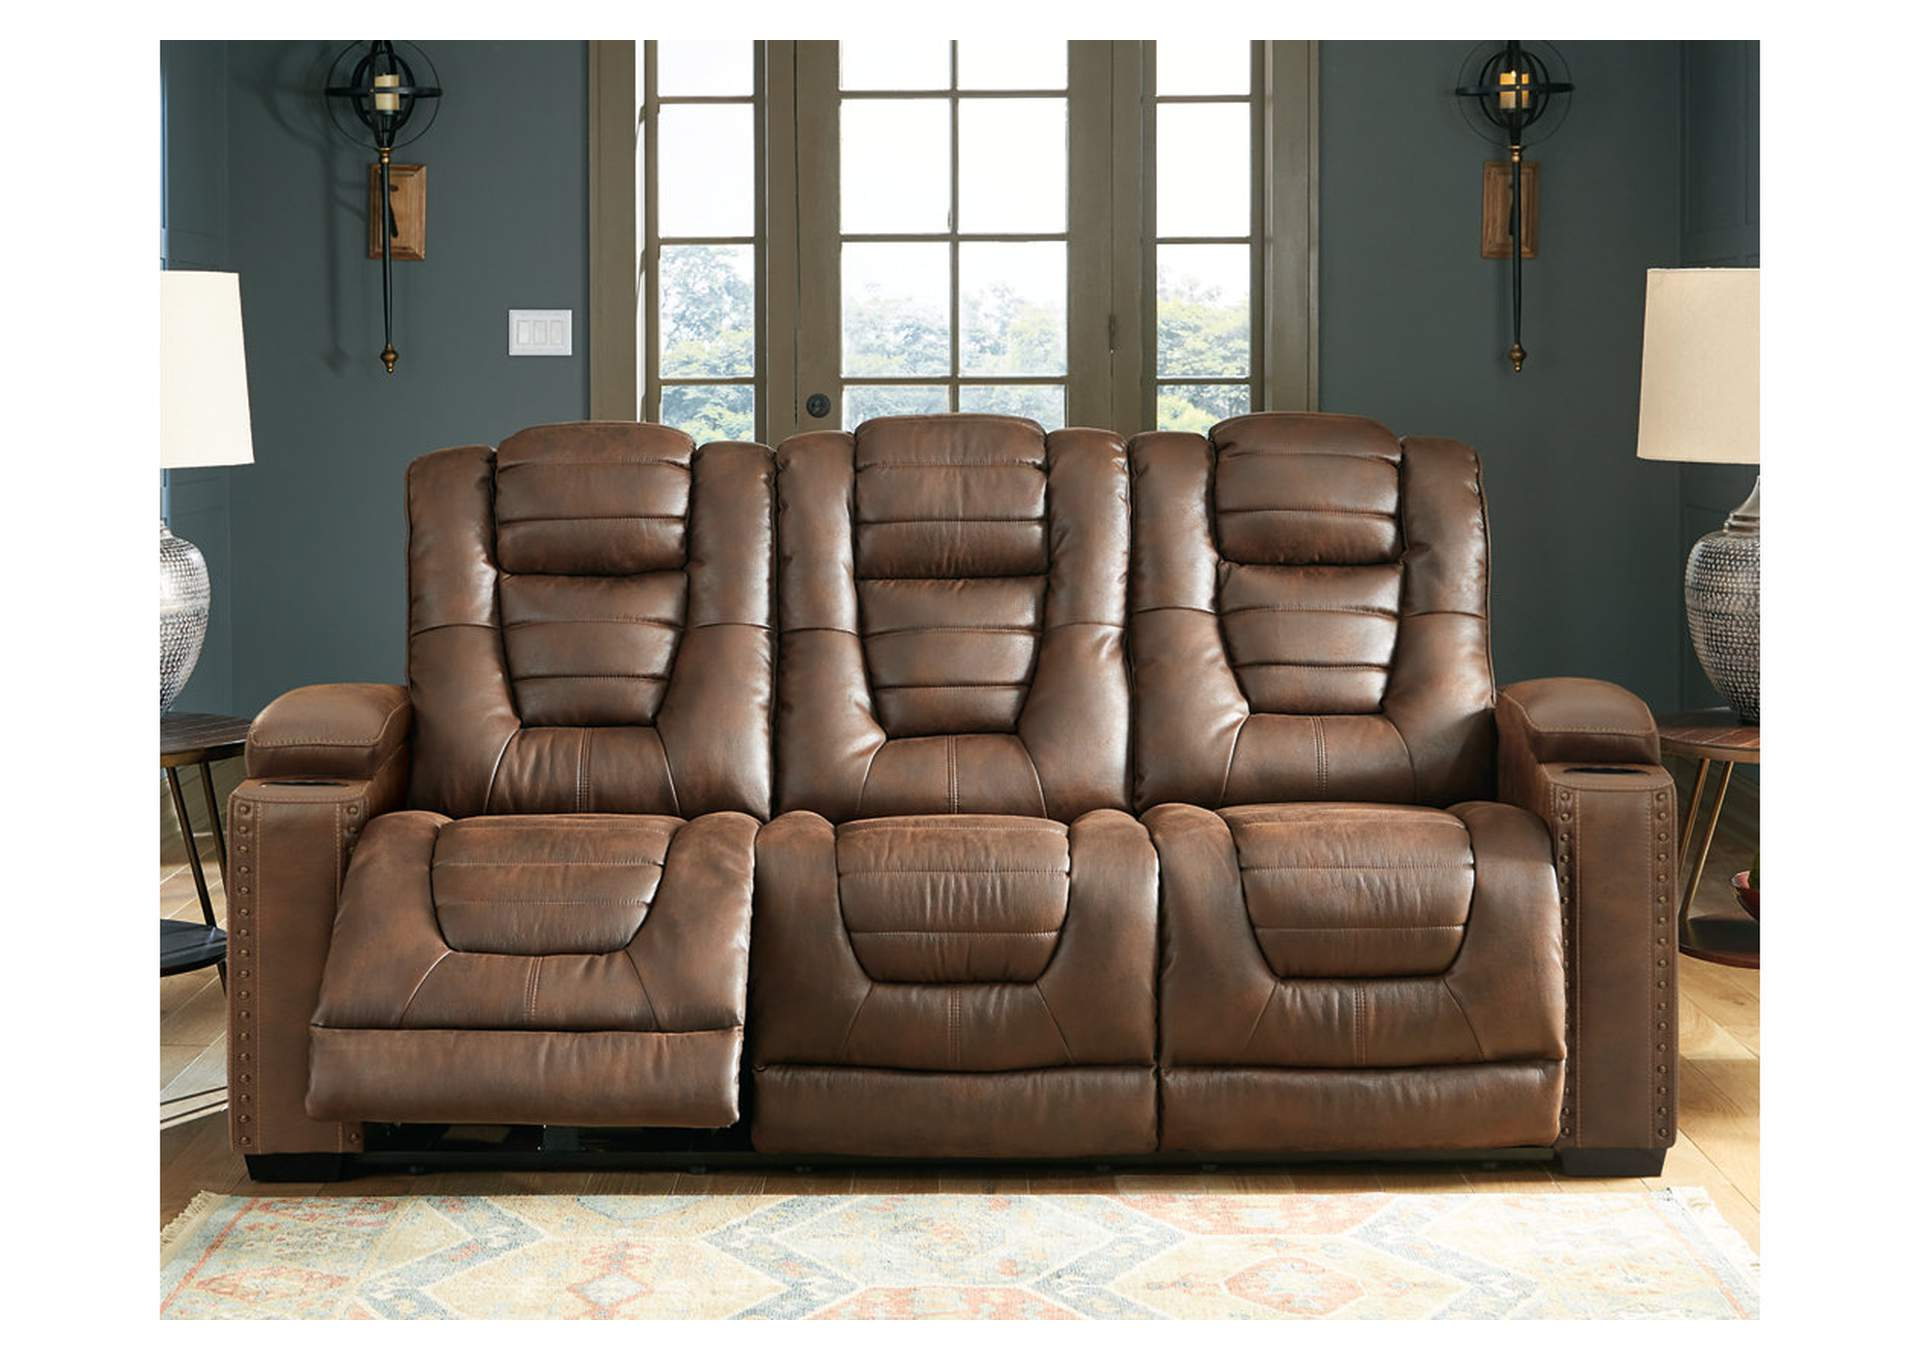 Owner's Box Power Reclining Sofa,Signature Design By Ashley